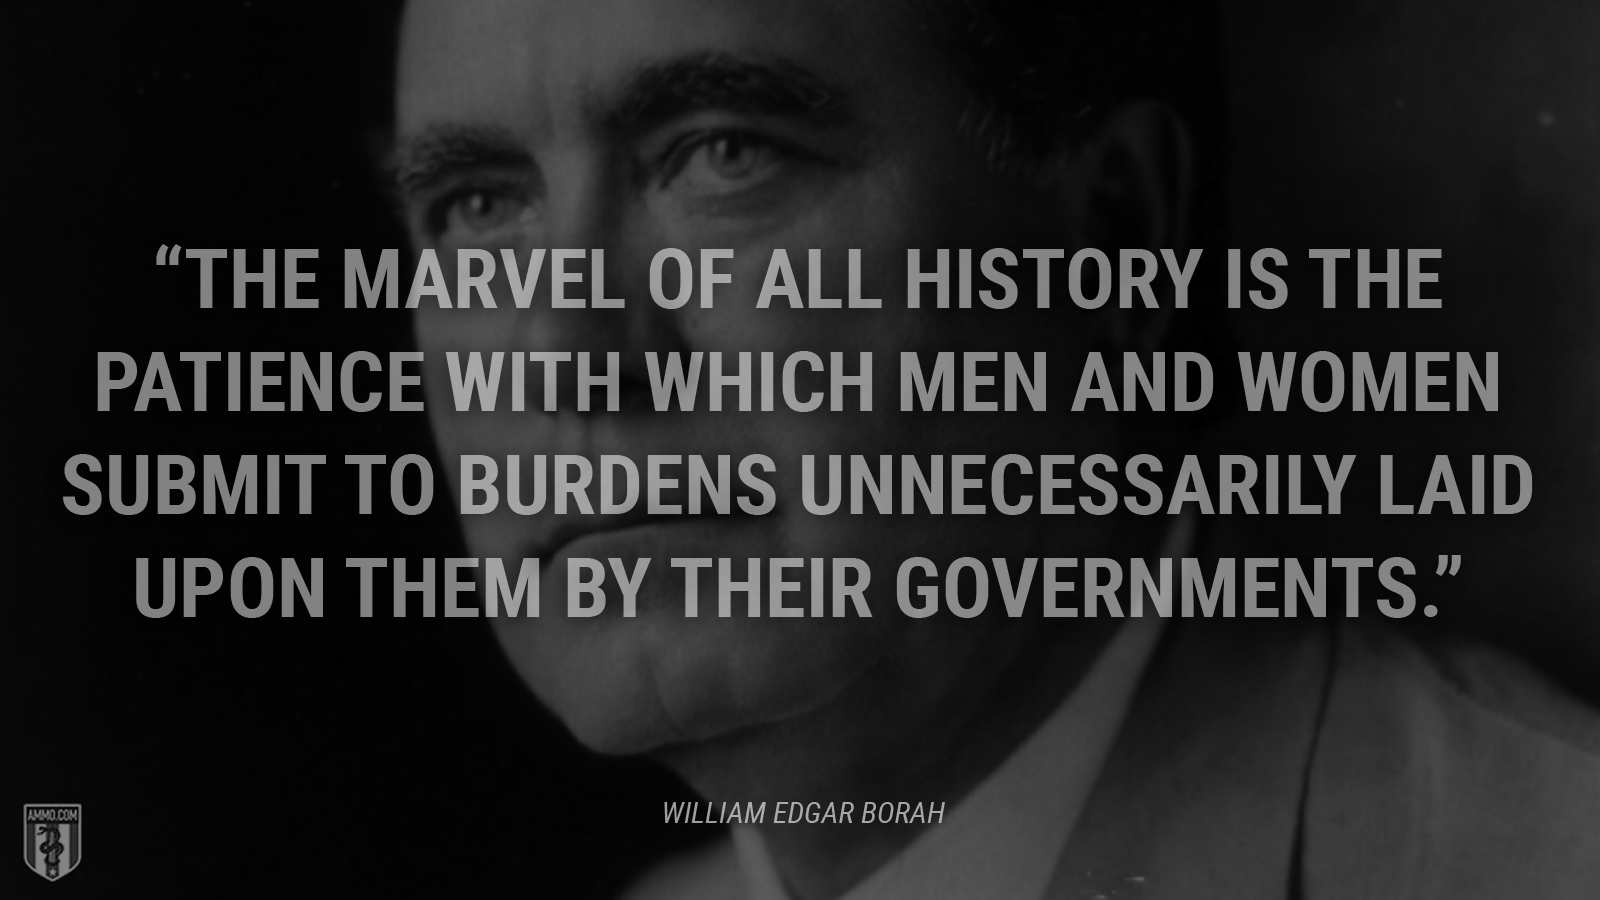 """The marvel of all history is the patience with which men and women submit to burdens unnecessarily laid upon them by their governments."" - William Edgar Borah"